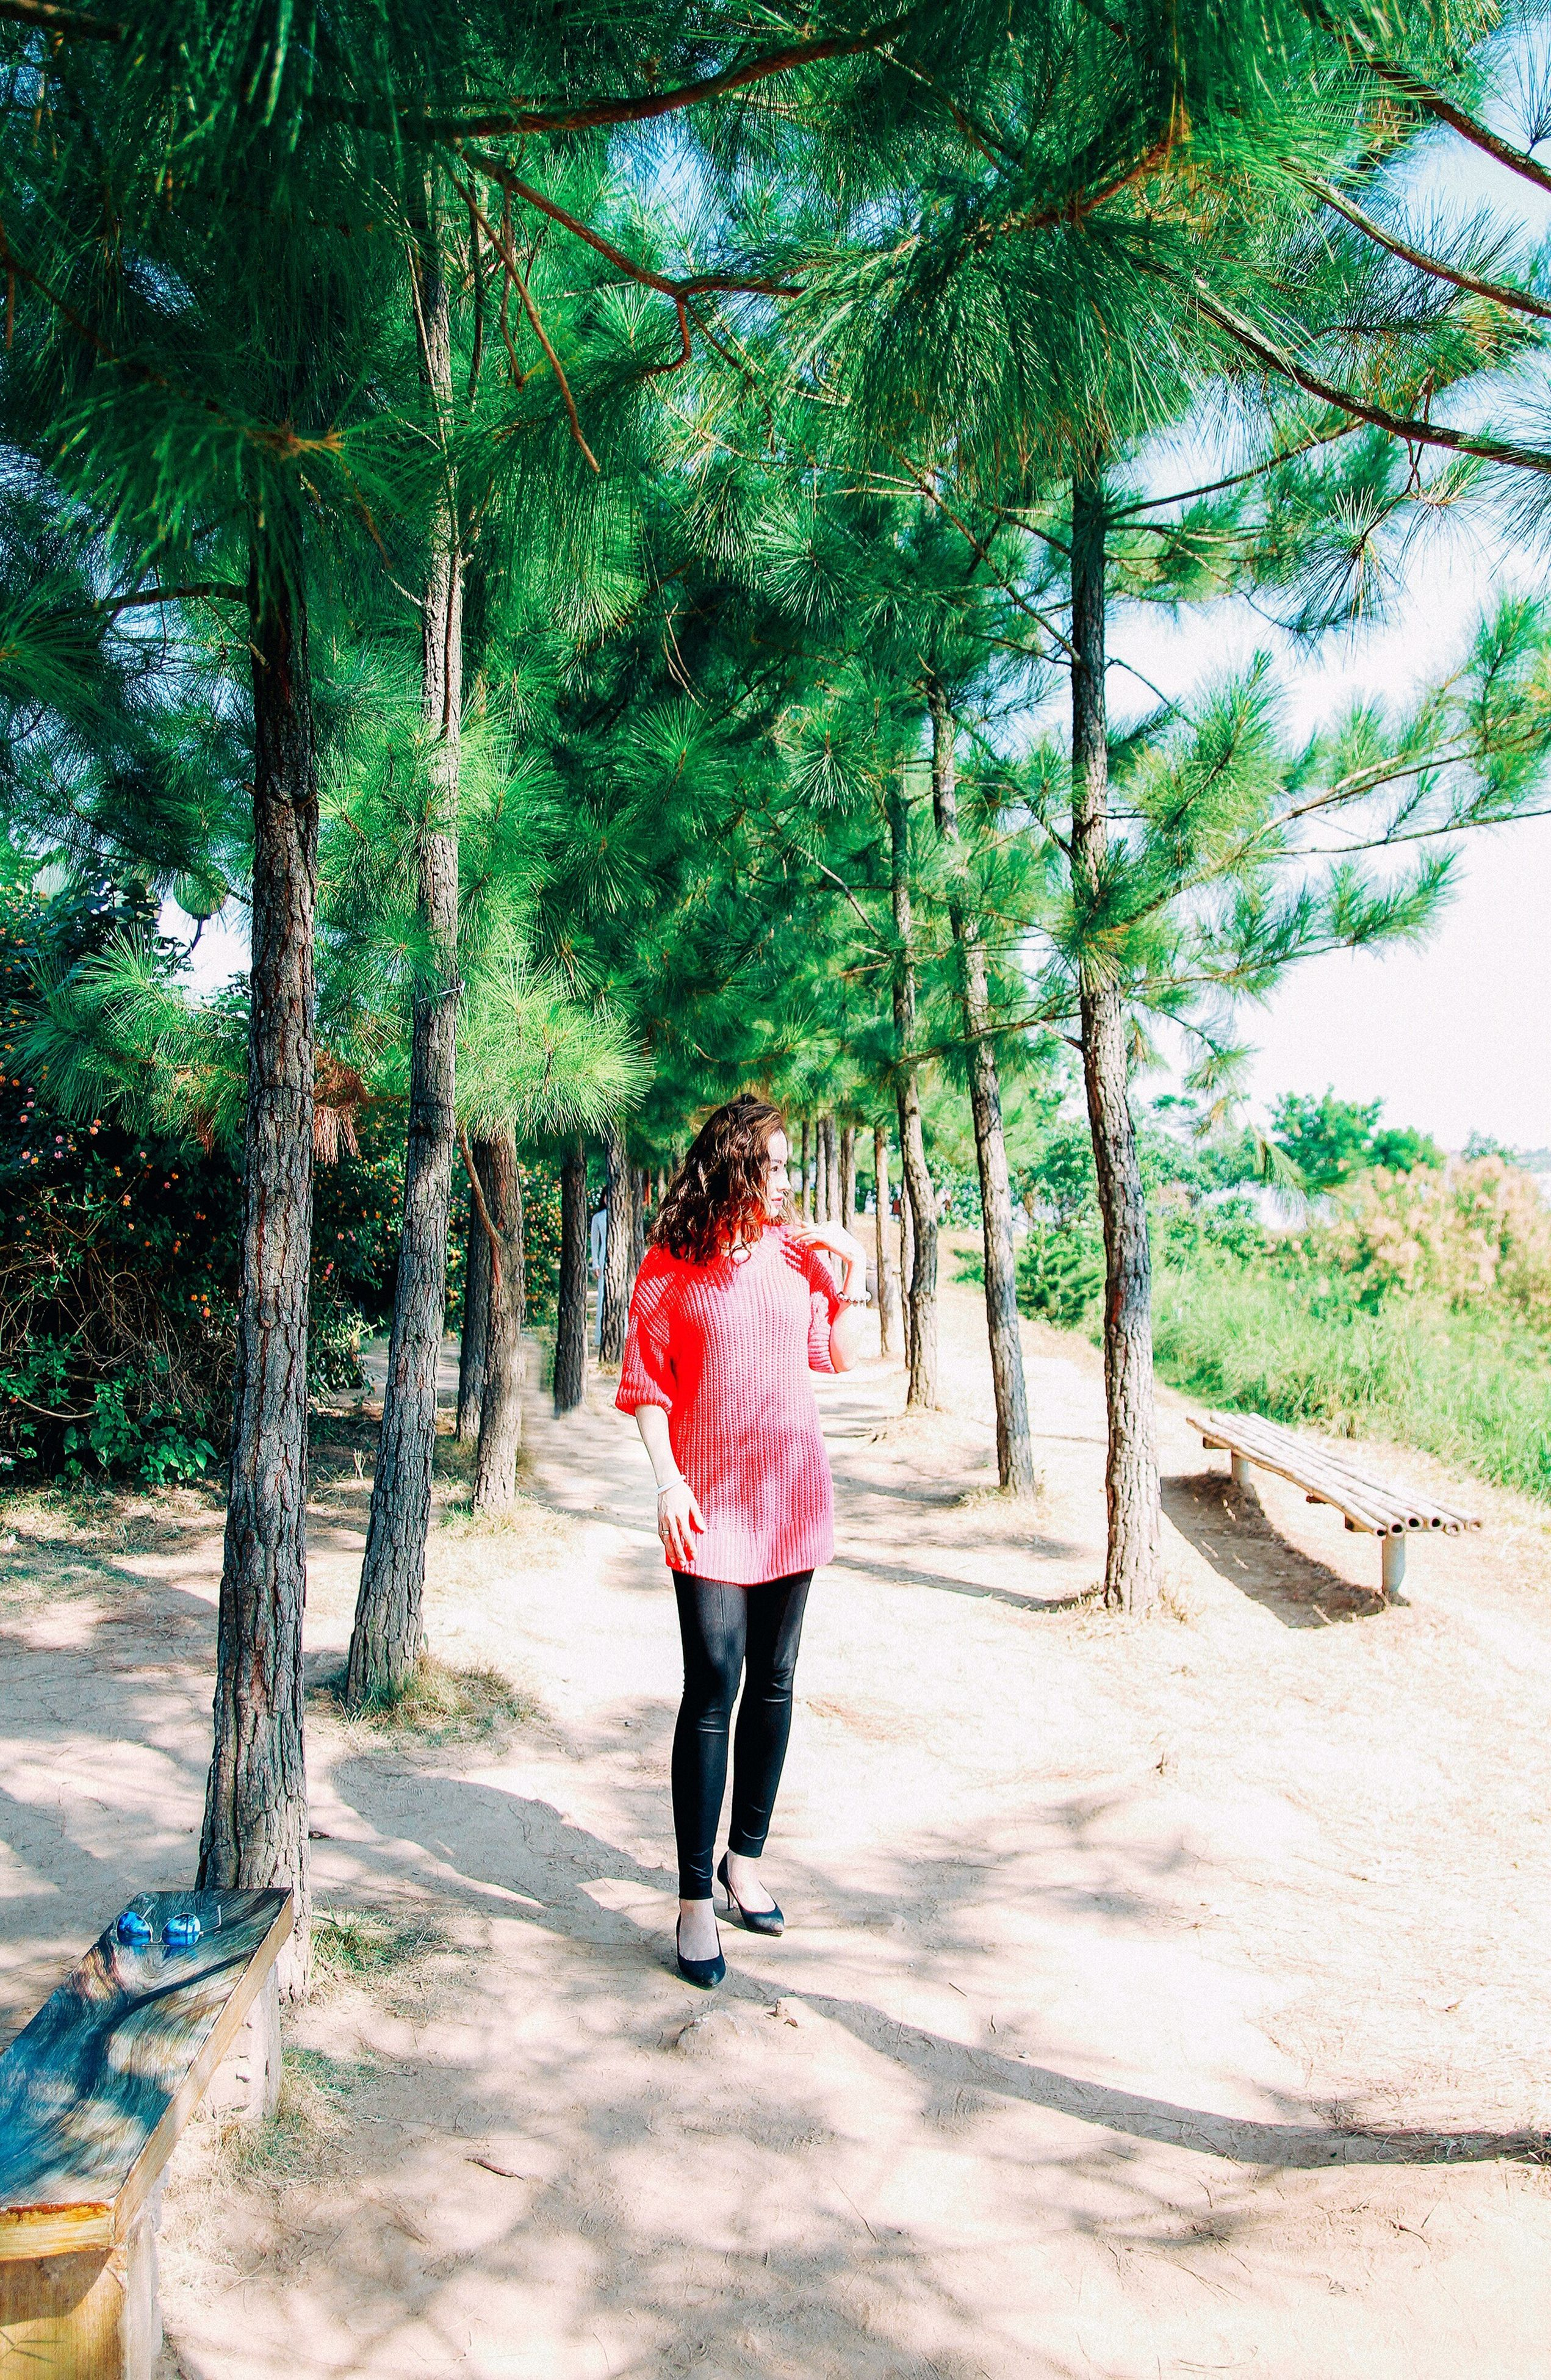 tree, full length, one person, nature, outdoors, leisure activity, day, red, sunlight, growth, real people, people, one woman only, one young woman only, beauty in nature, young adult, adults only, adult